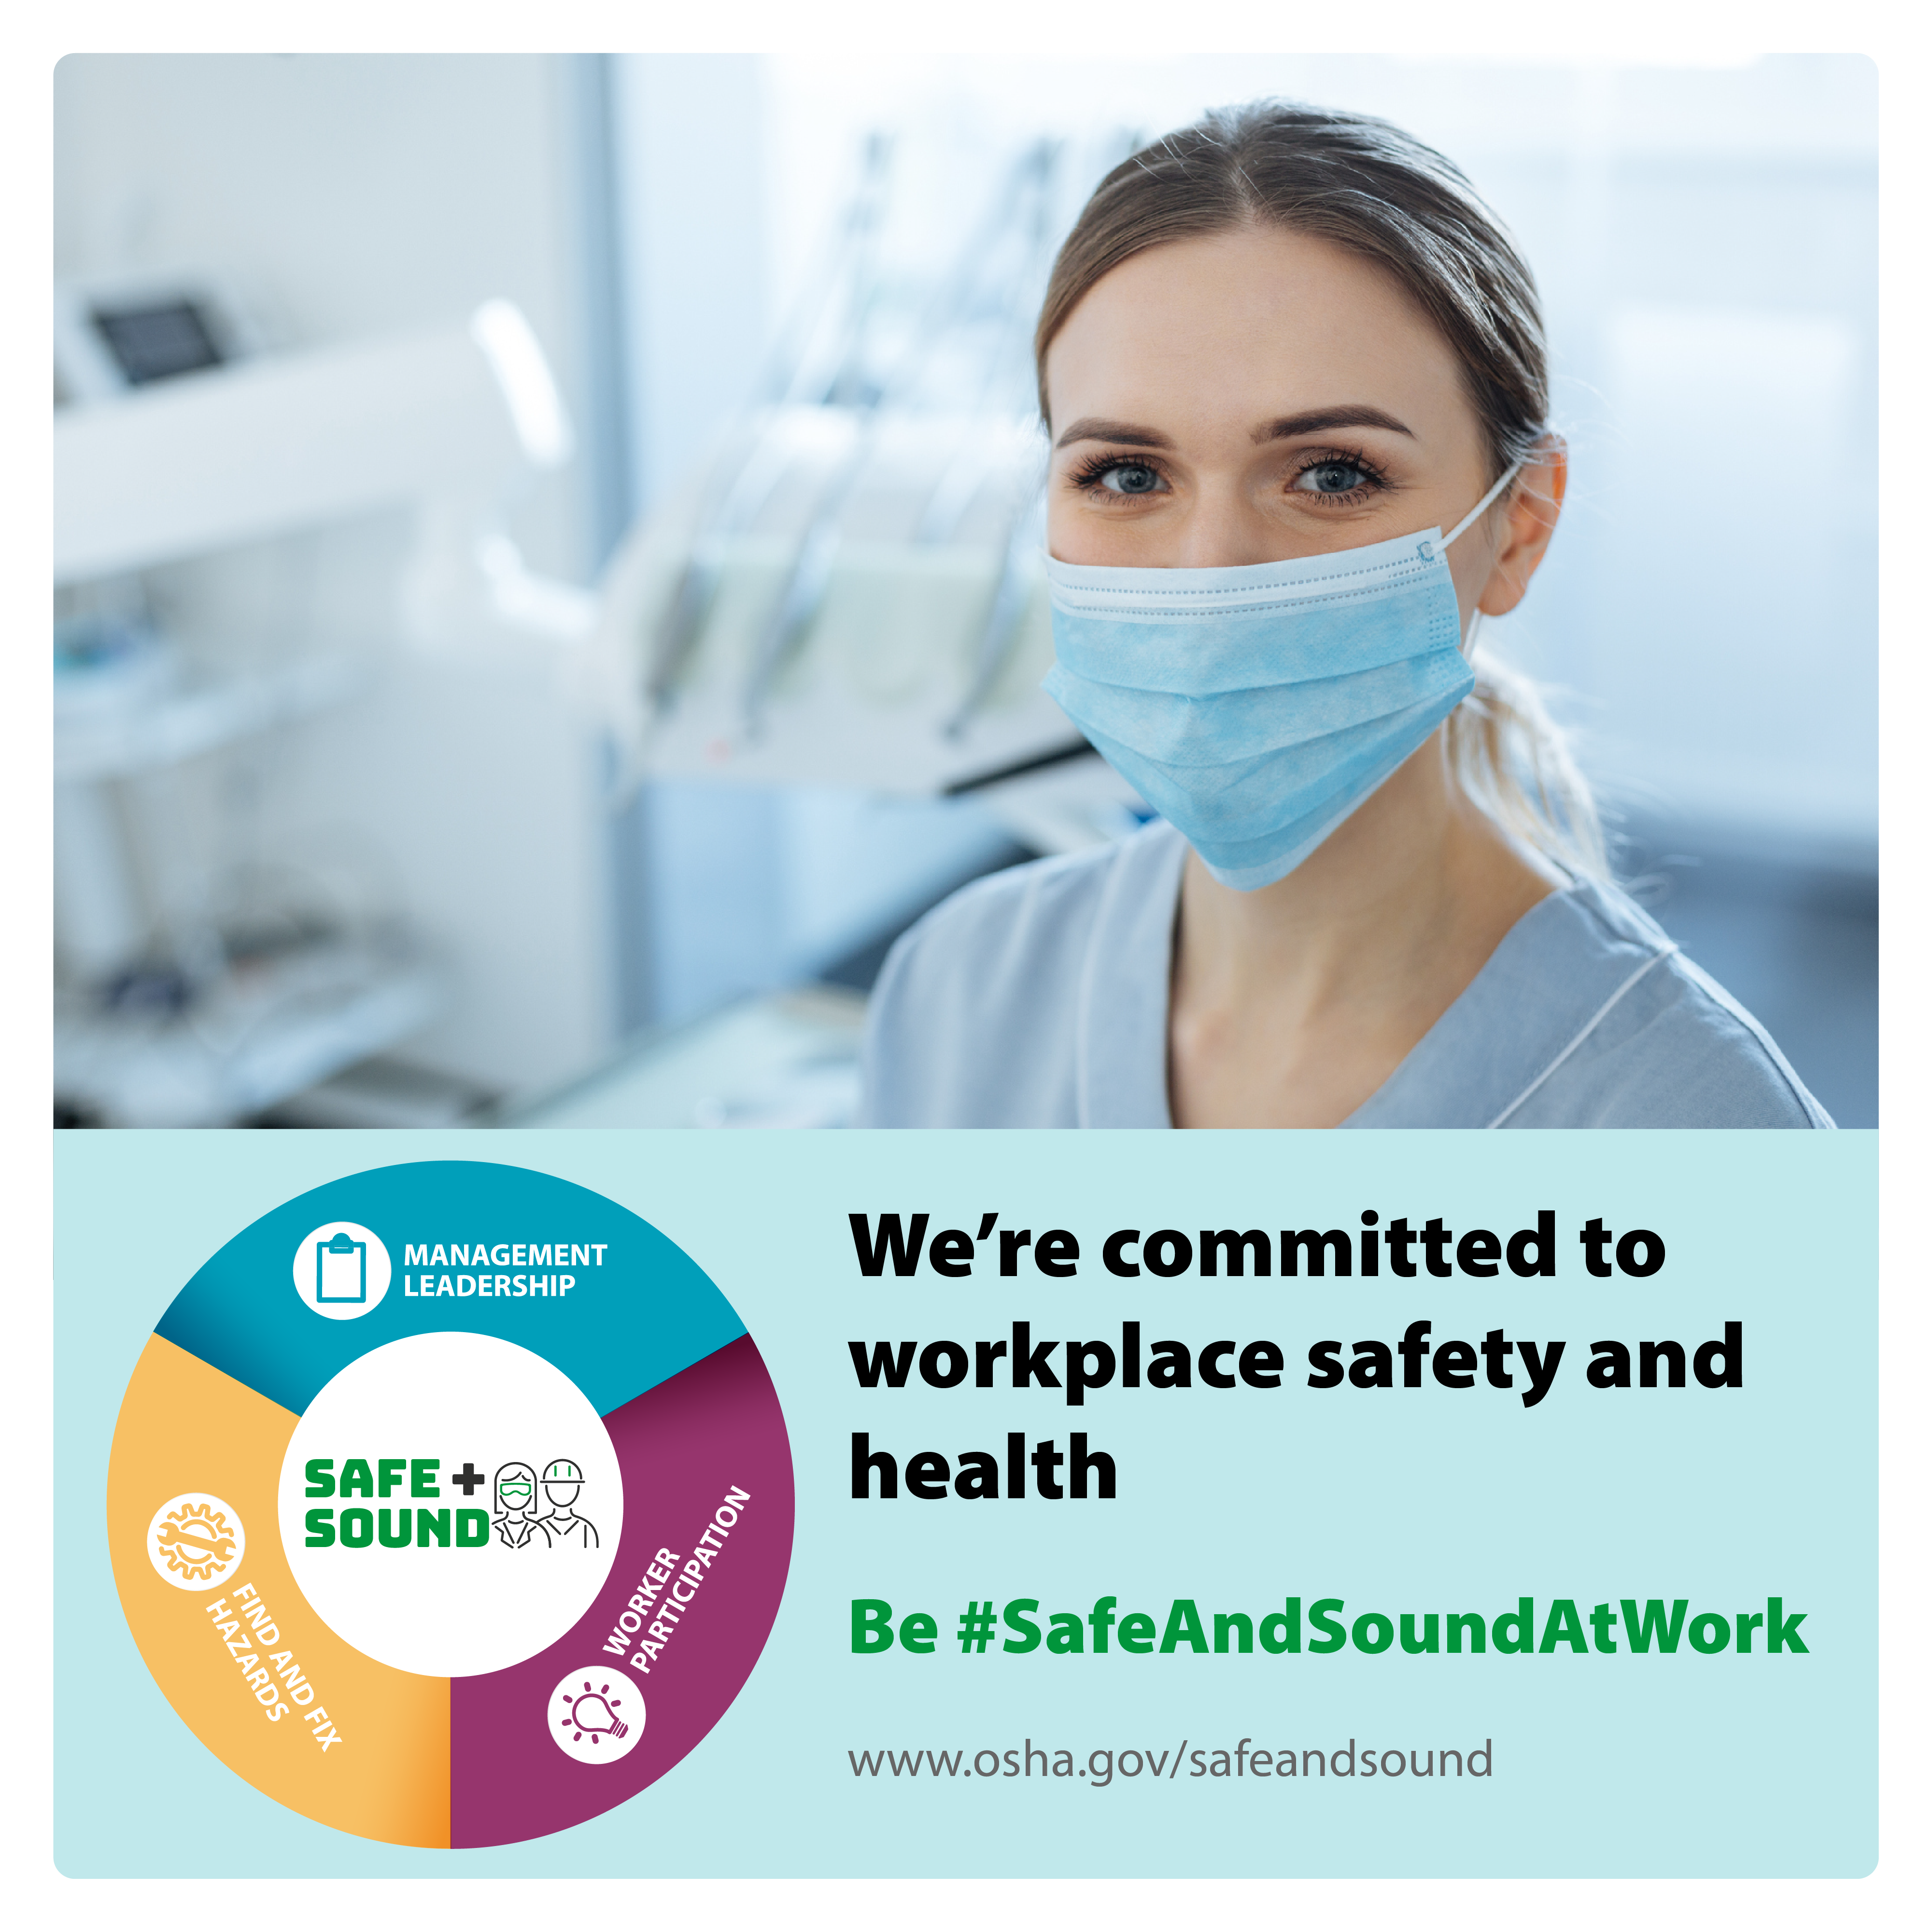 Image of a healthcare worker in a mask with the text: We're committed to workplace safety and health be #SafeAndSoundAtWork - www.osha.gov/safeandsound